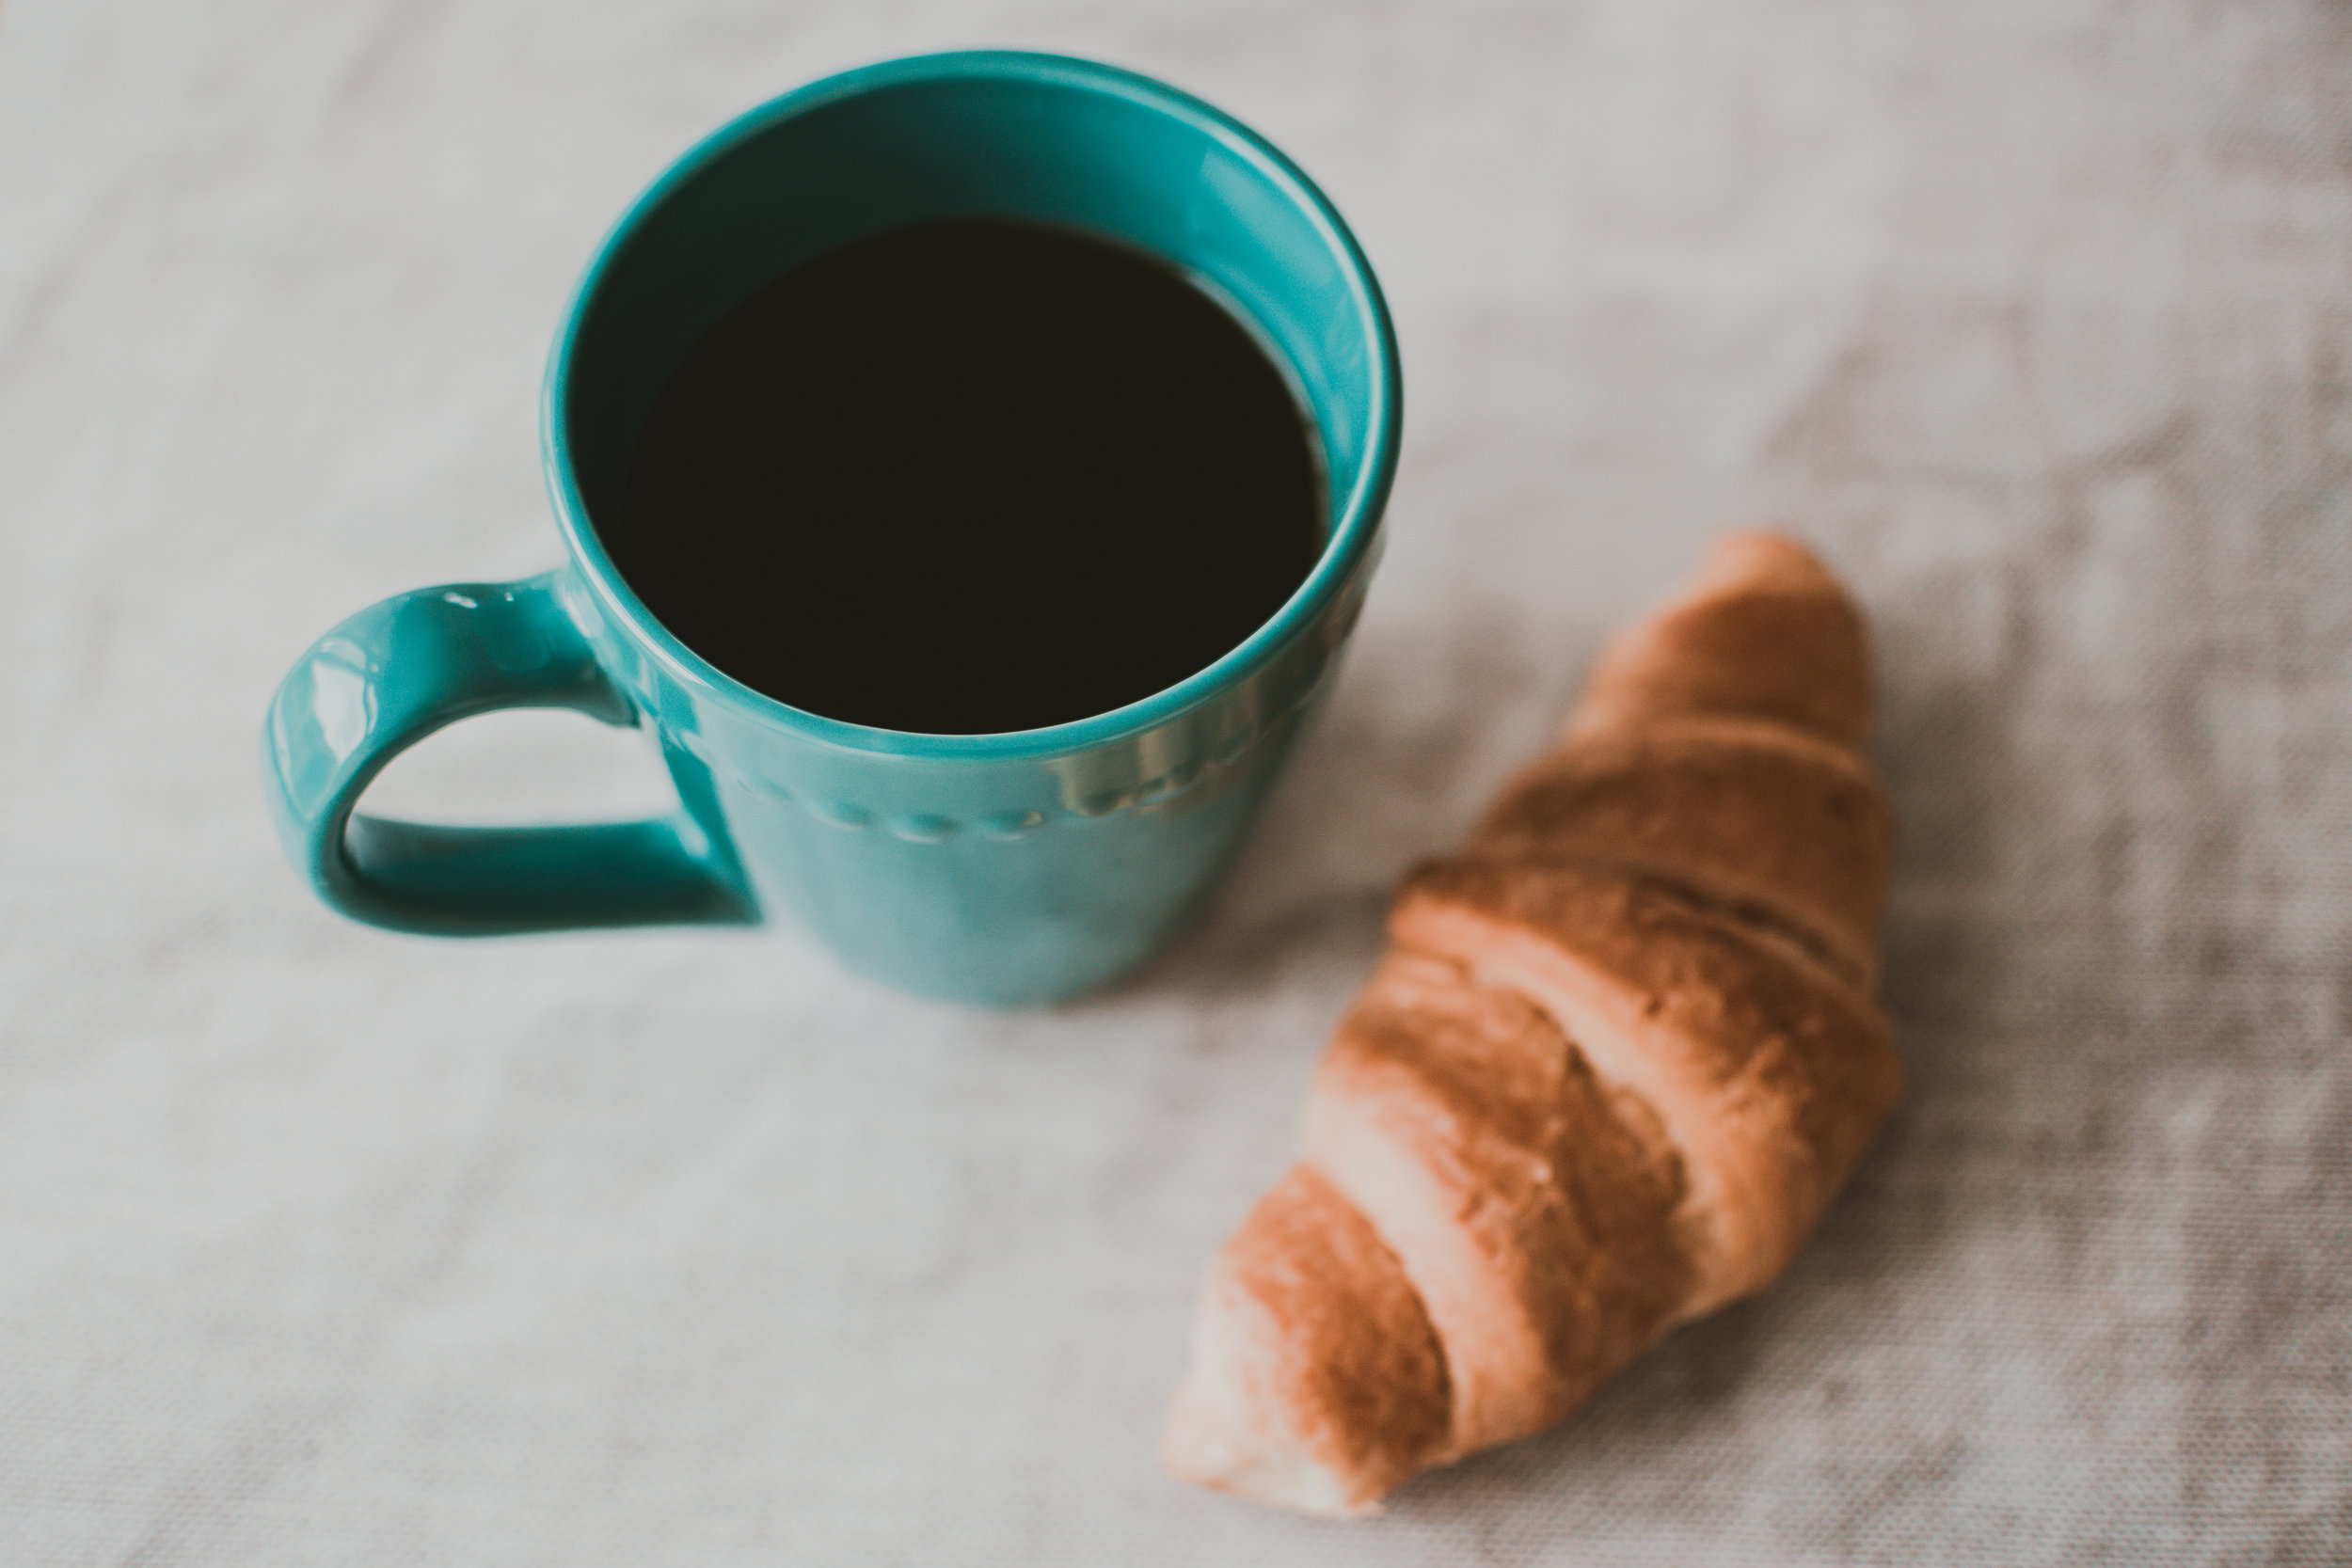 Canva - Teal Ceramic Mug Filled With Coffee Near Baked Bread.jpg